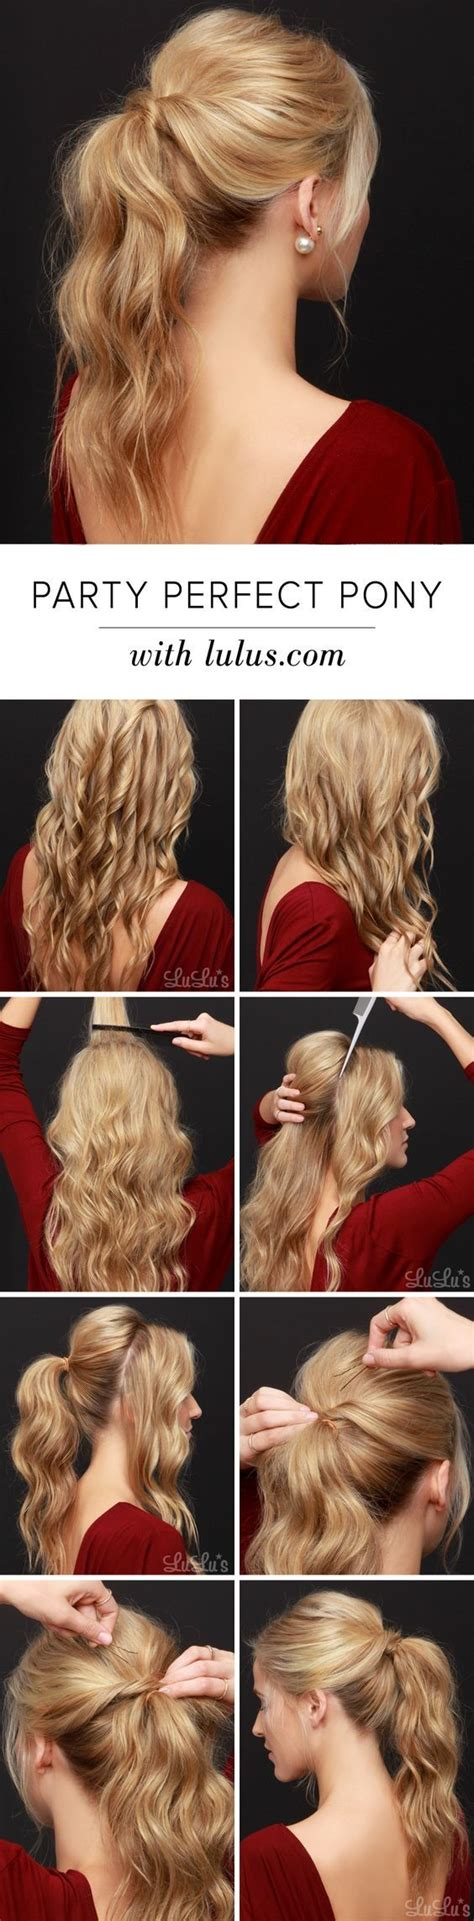 what can you make with pony 10 easy ponytail hairstyles hair style ideas 2018